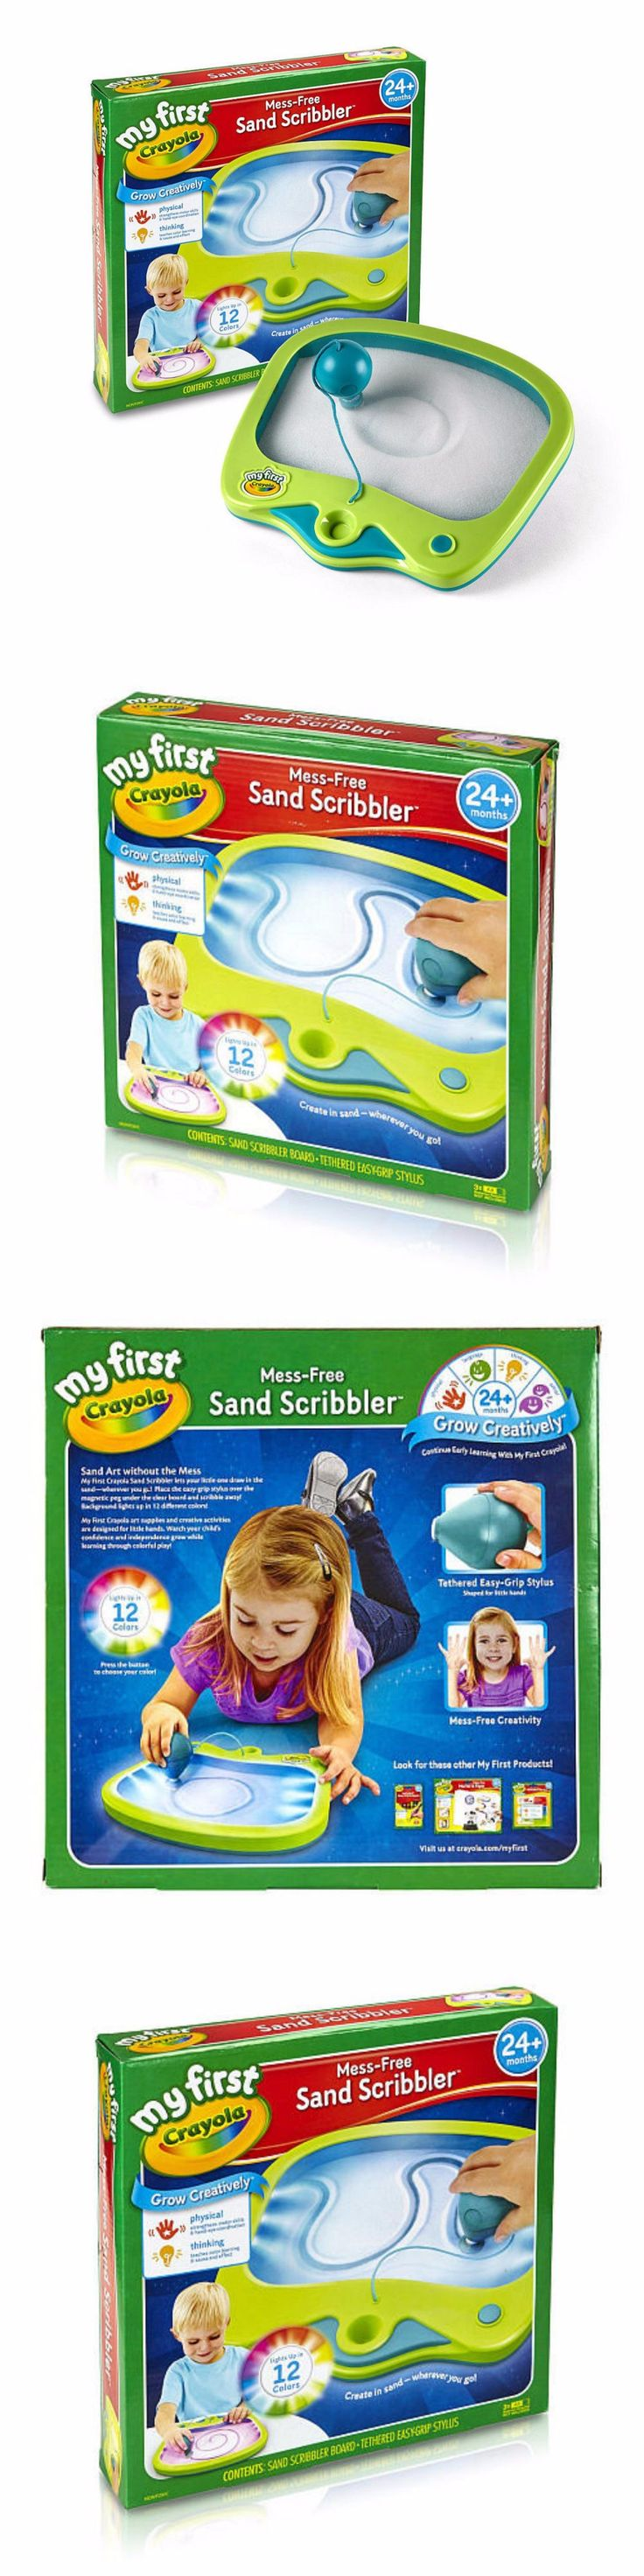 Other Kids Drawing and Painting 160718: Crayola Kids Fun Little Sand Draw Writing Scribbler Learning Play Board Toy Set -> BUY IT NOW ONLY: $35.99 on eBay!